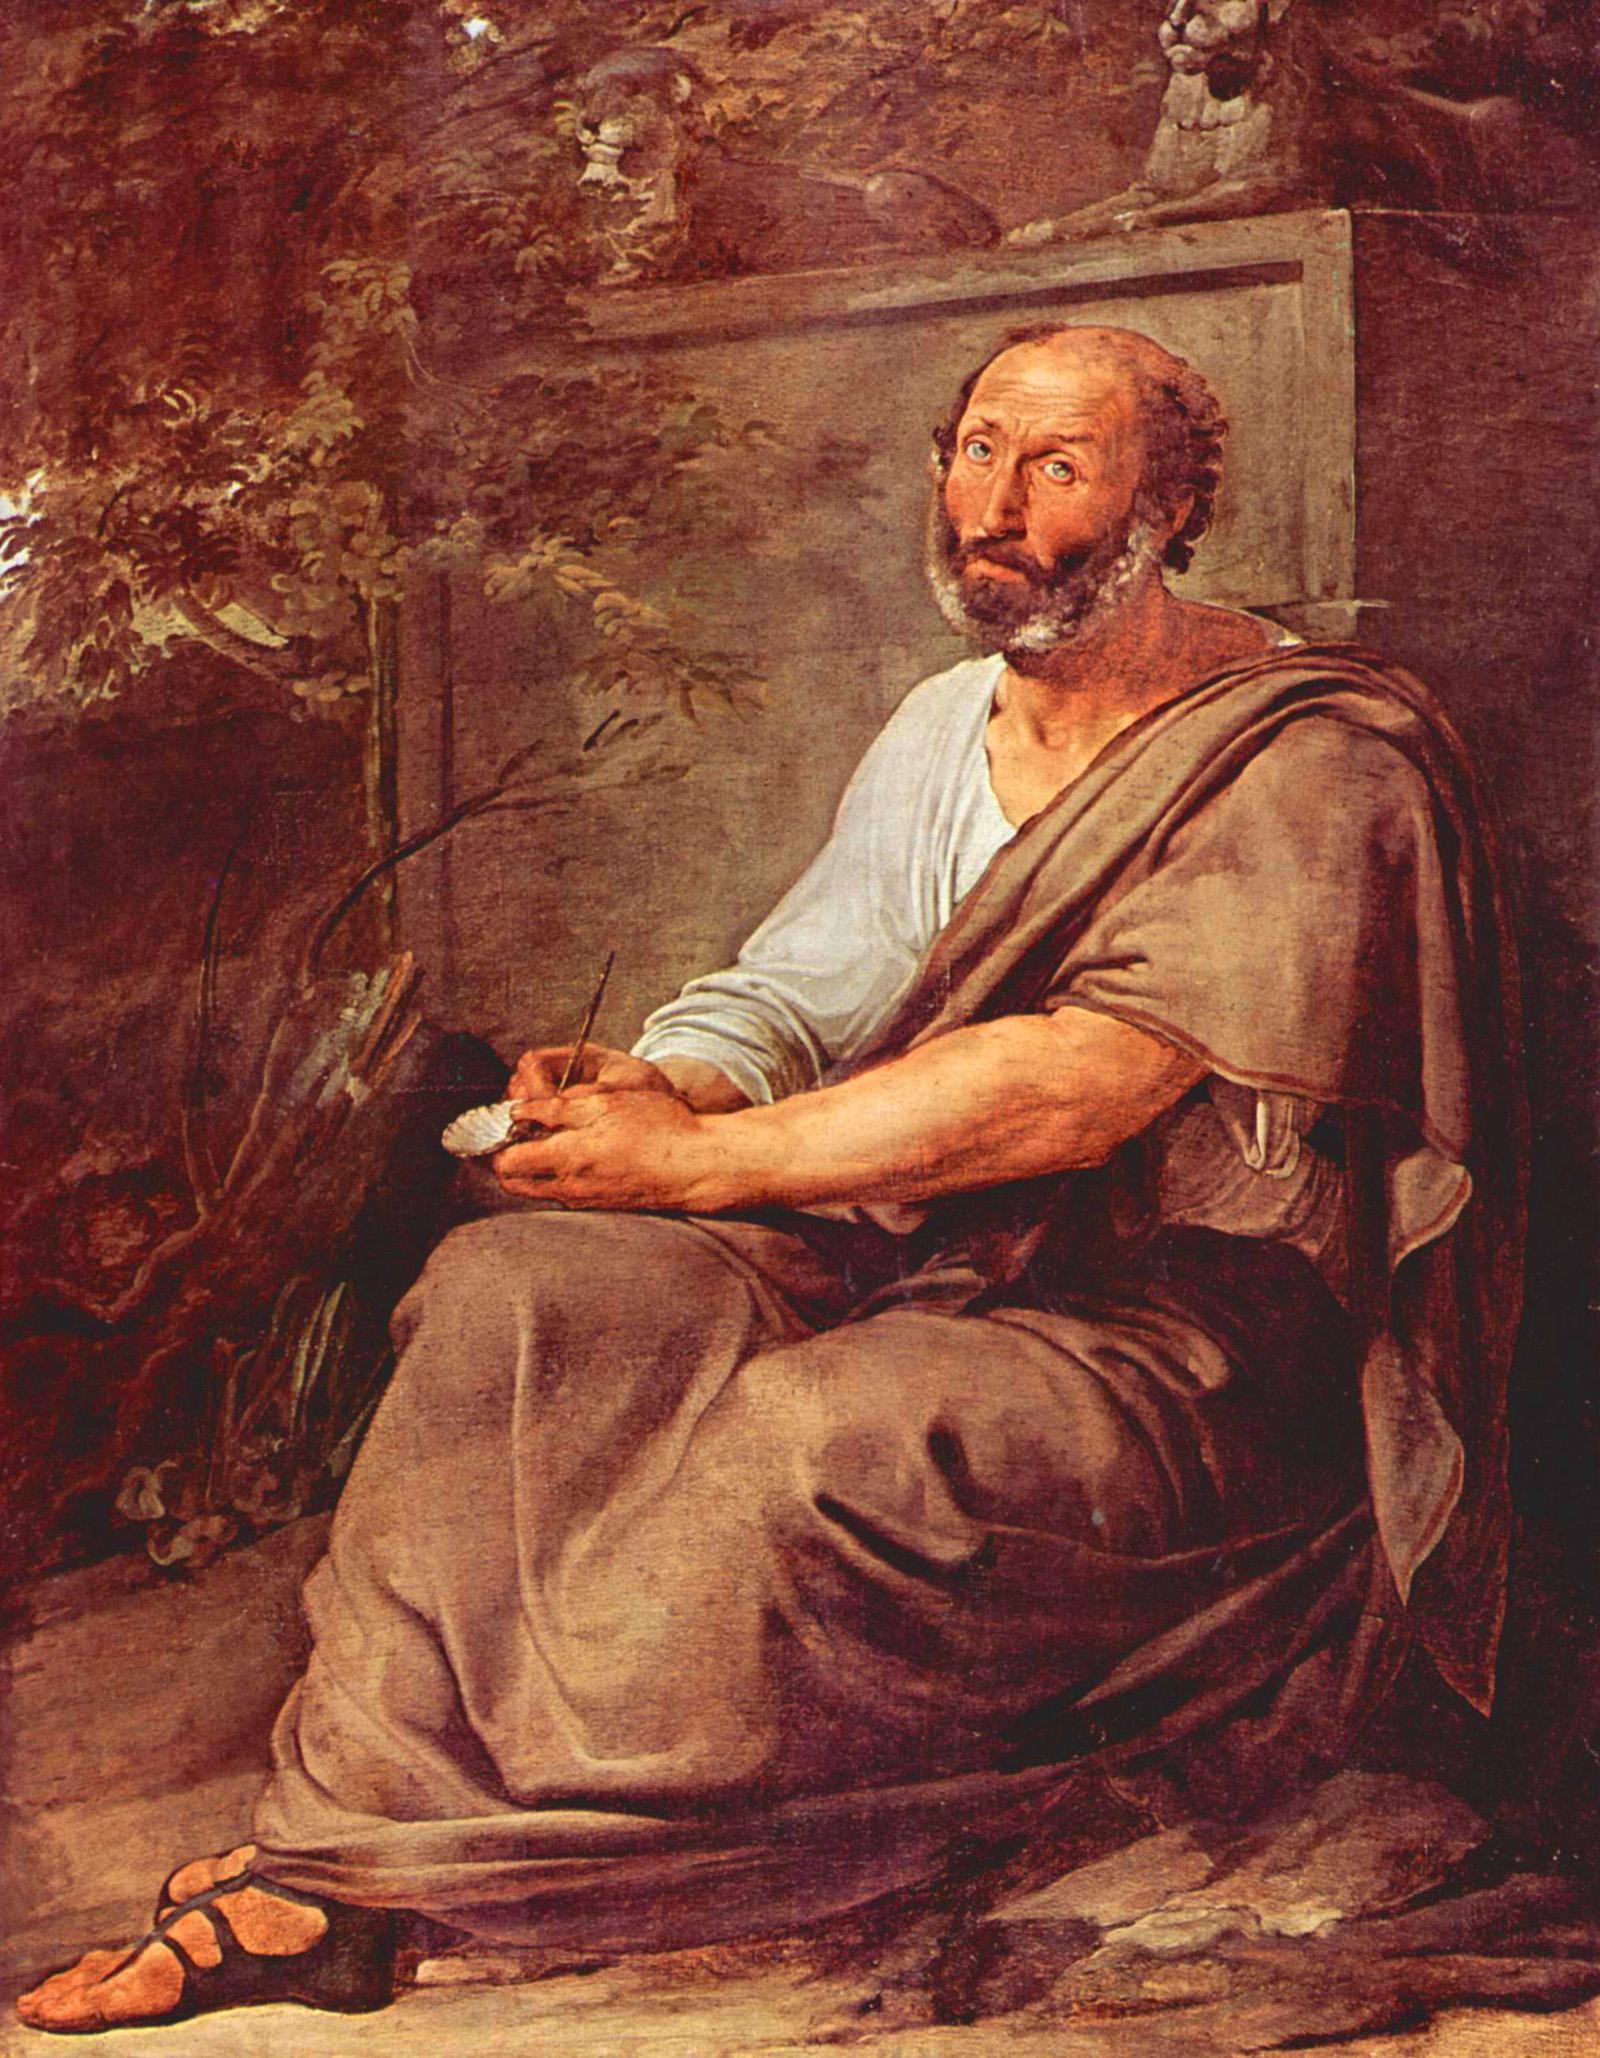 the views of socrates and aristotle on ethics Socrates' point of view on akrasia according to socrates (470 bc-399 bc), akrasia according to aristotle, socrates  ( ) note that lack of knowledge in practical wisdom, according to virtue ethics, necessarily involves ignorance of what is truly good.